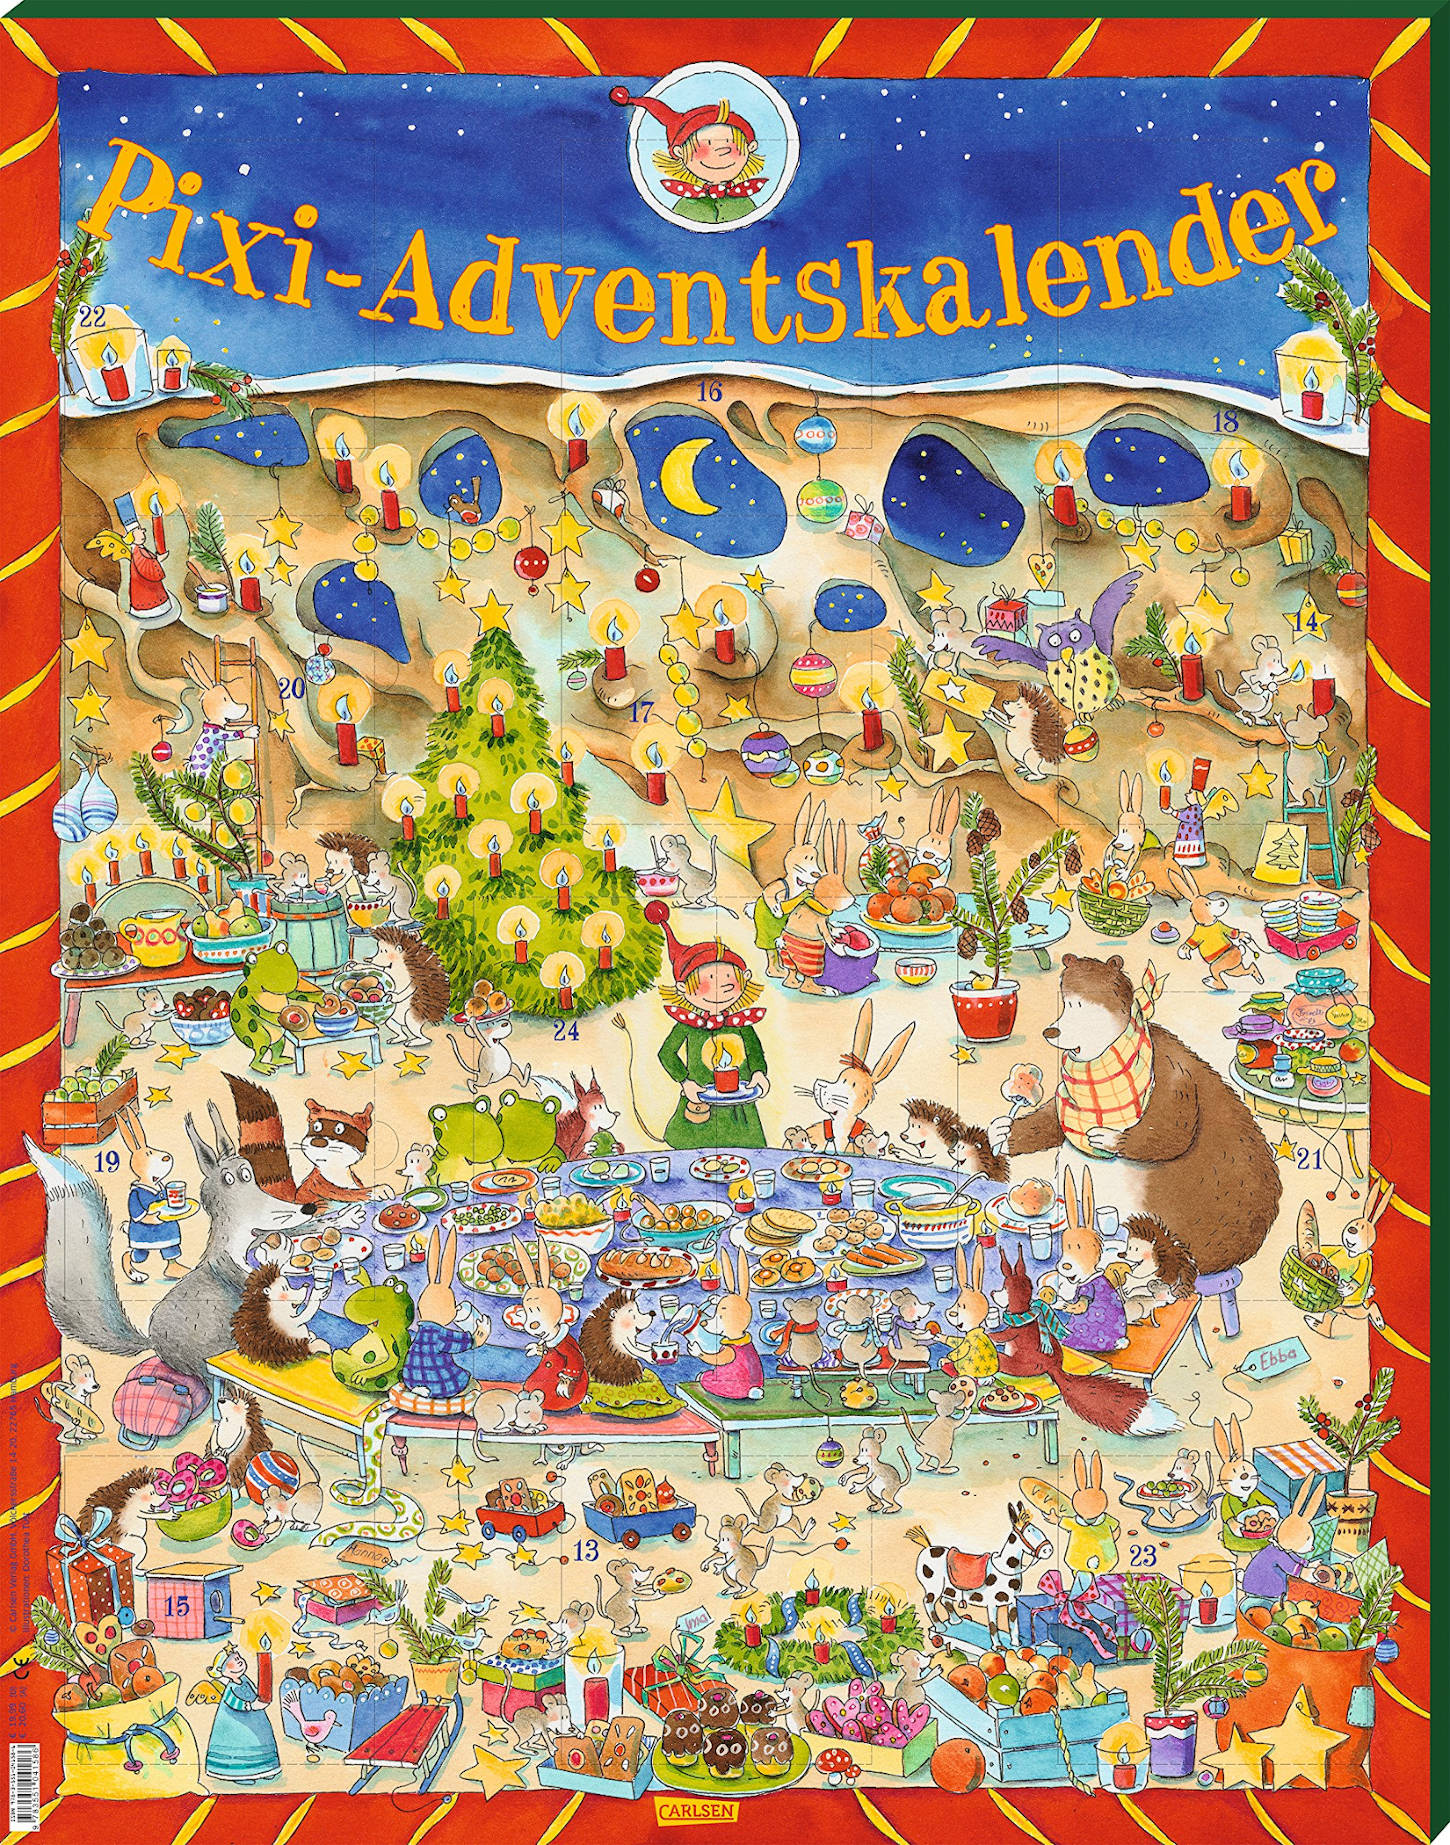 amazon Pixi Adventskalender 2016